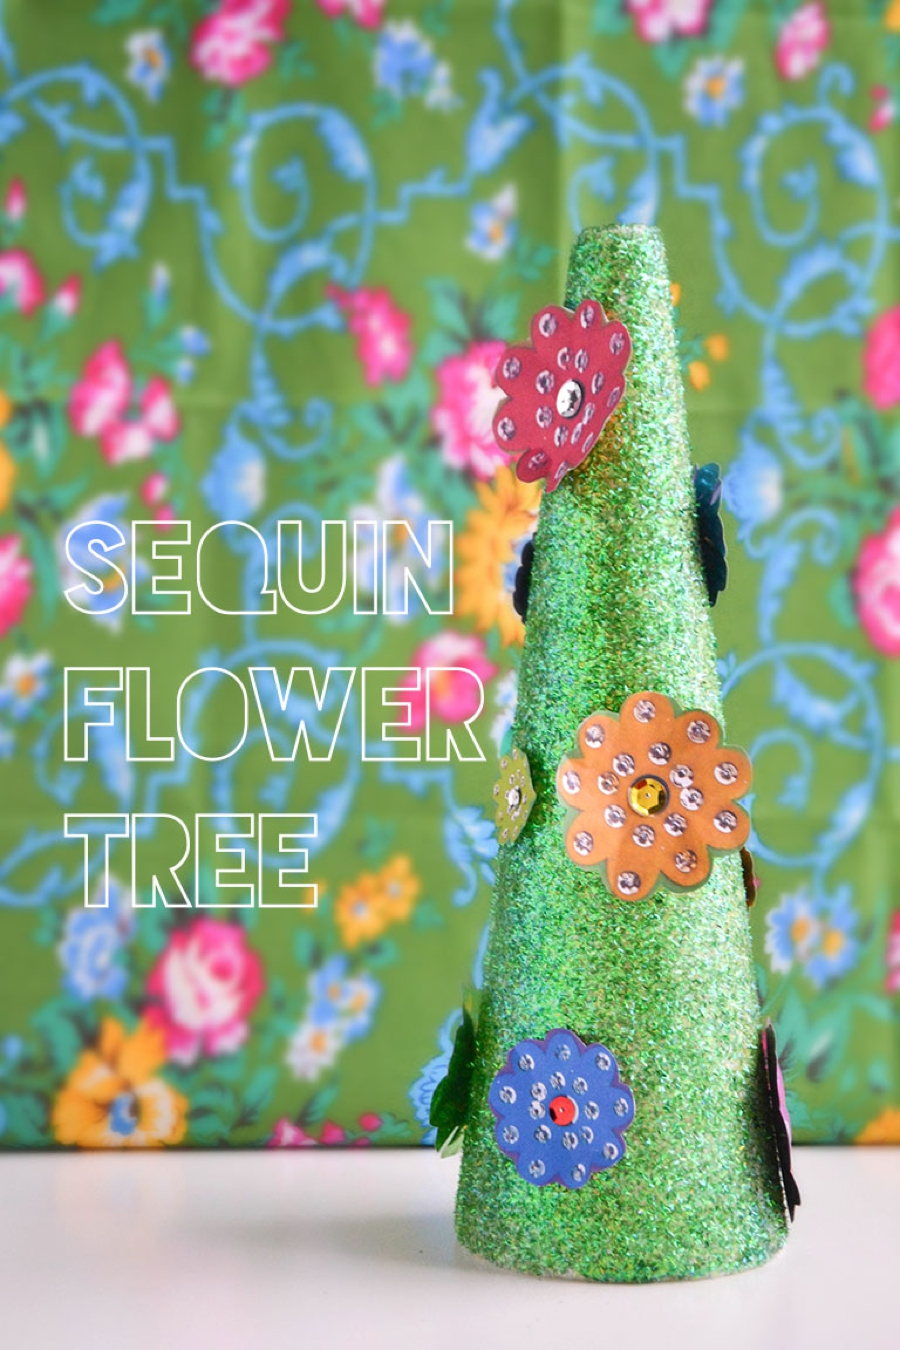 LoveColorful_Sequin Flower Tree_0001